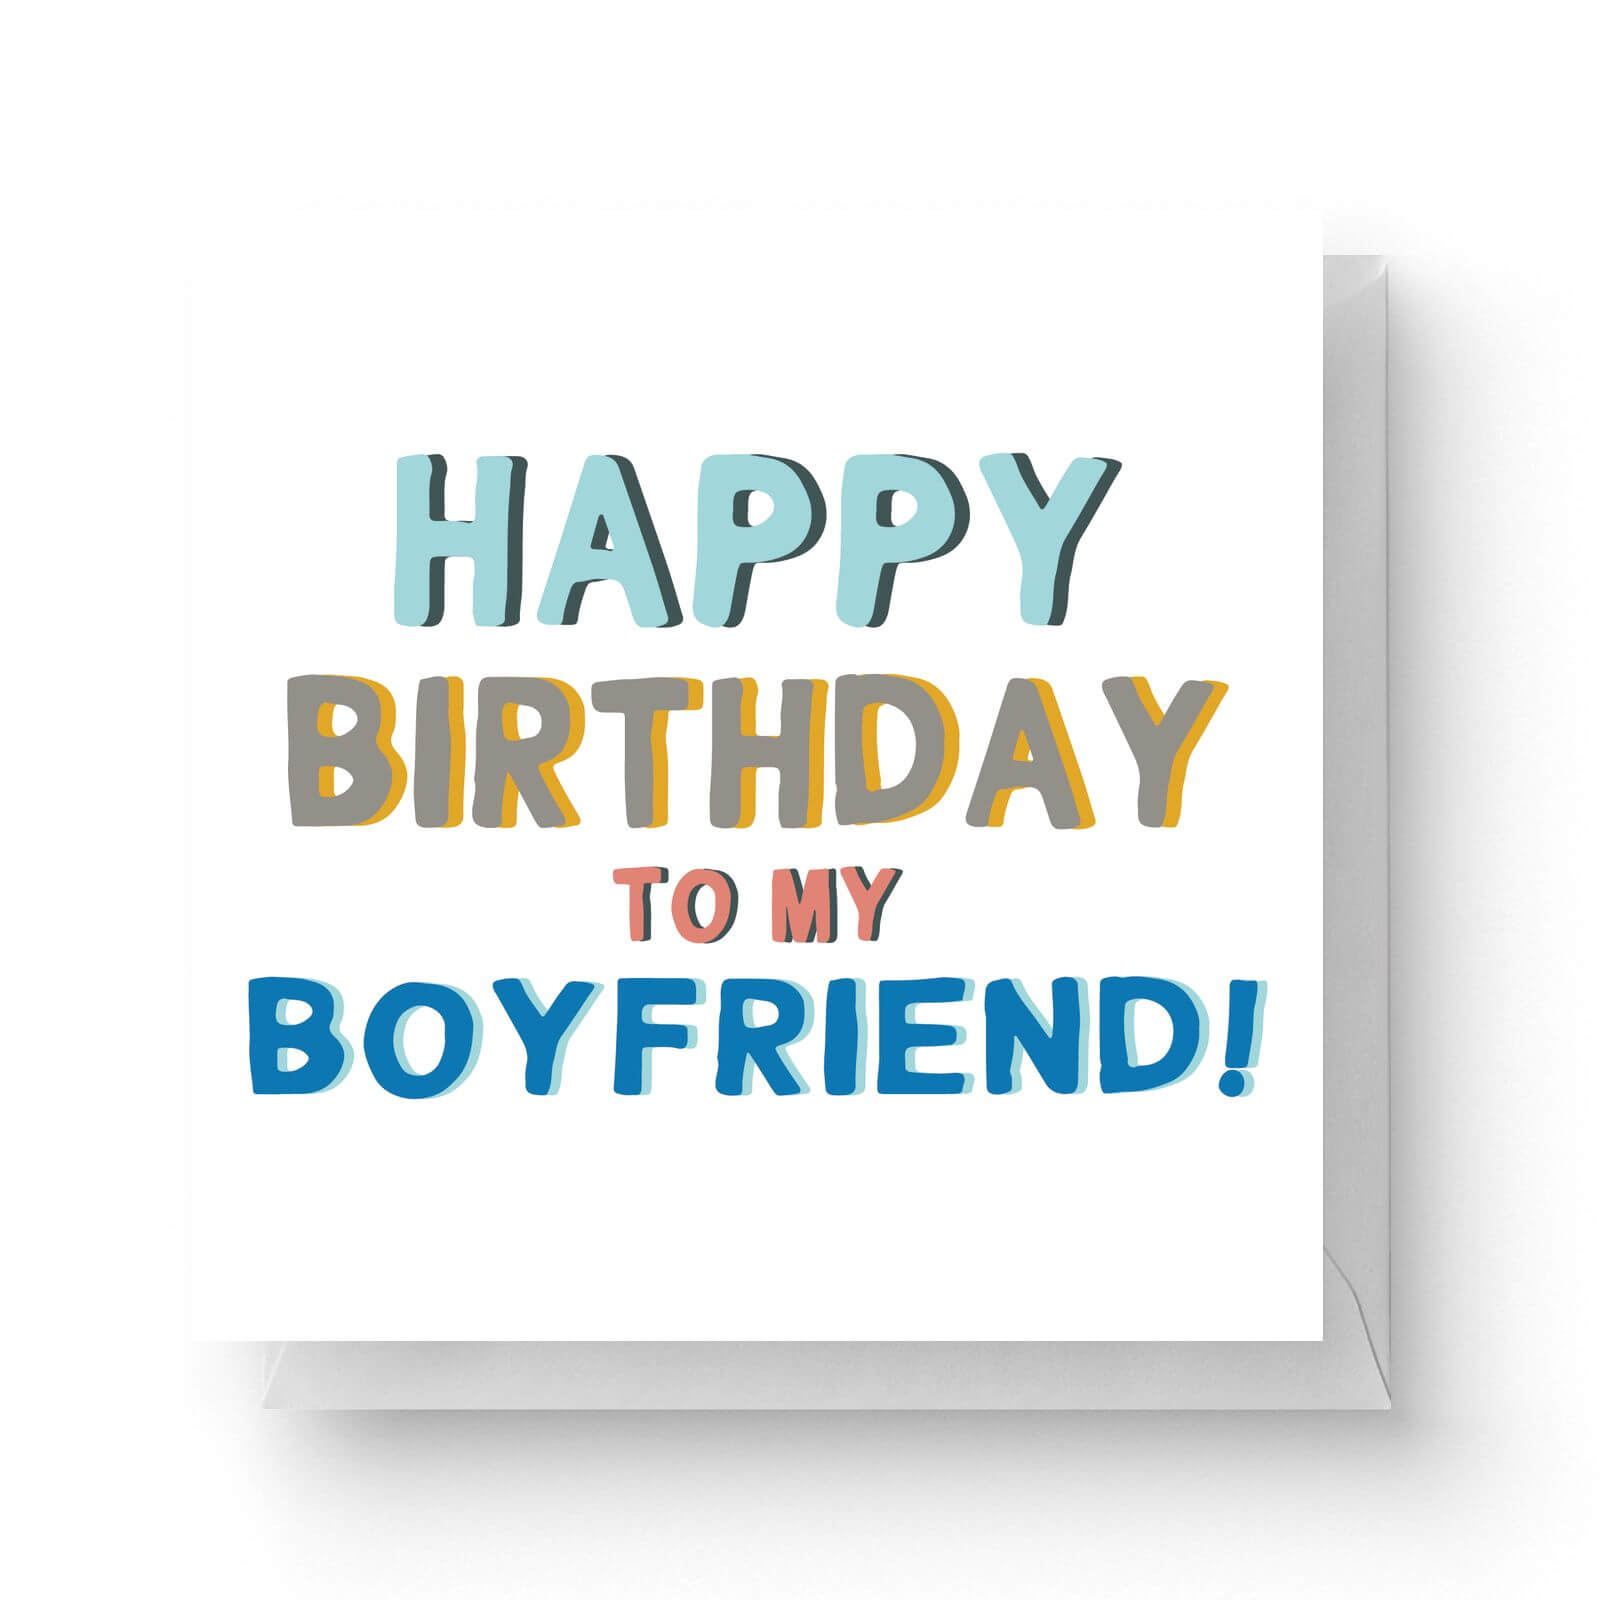 Happy Birthday To My Boyfriend Square Greetings Card (14 8cm x 14 8cm)